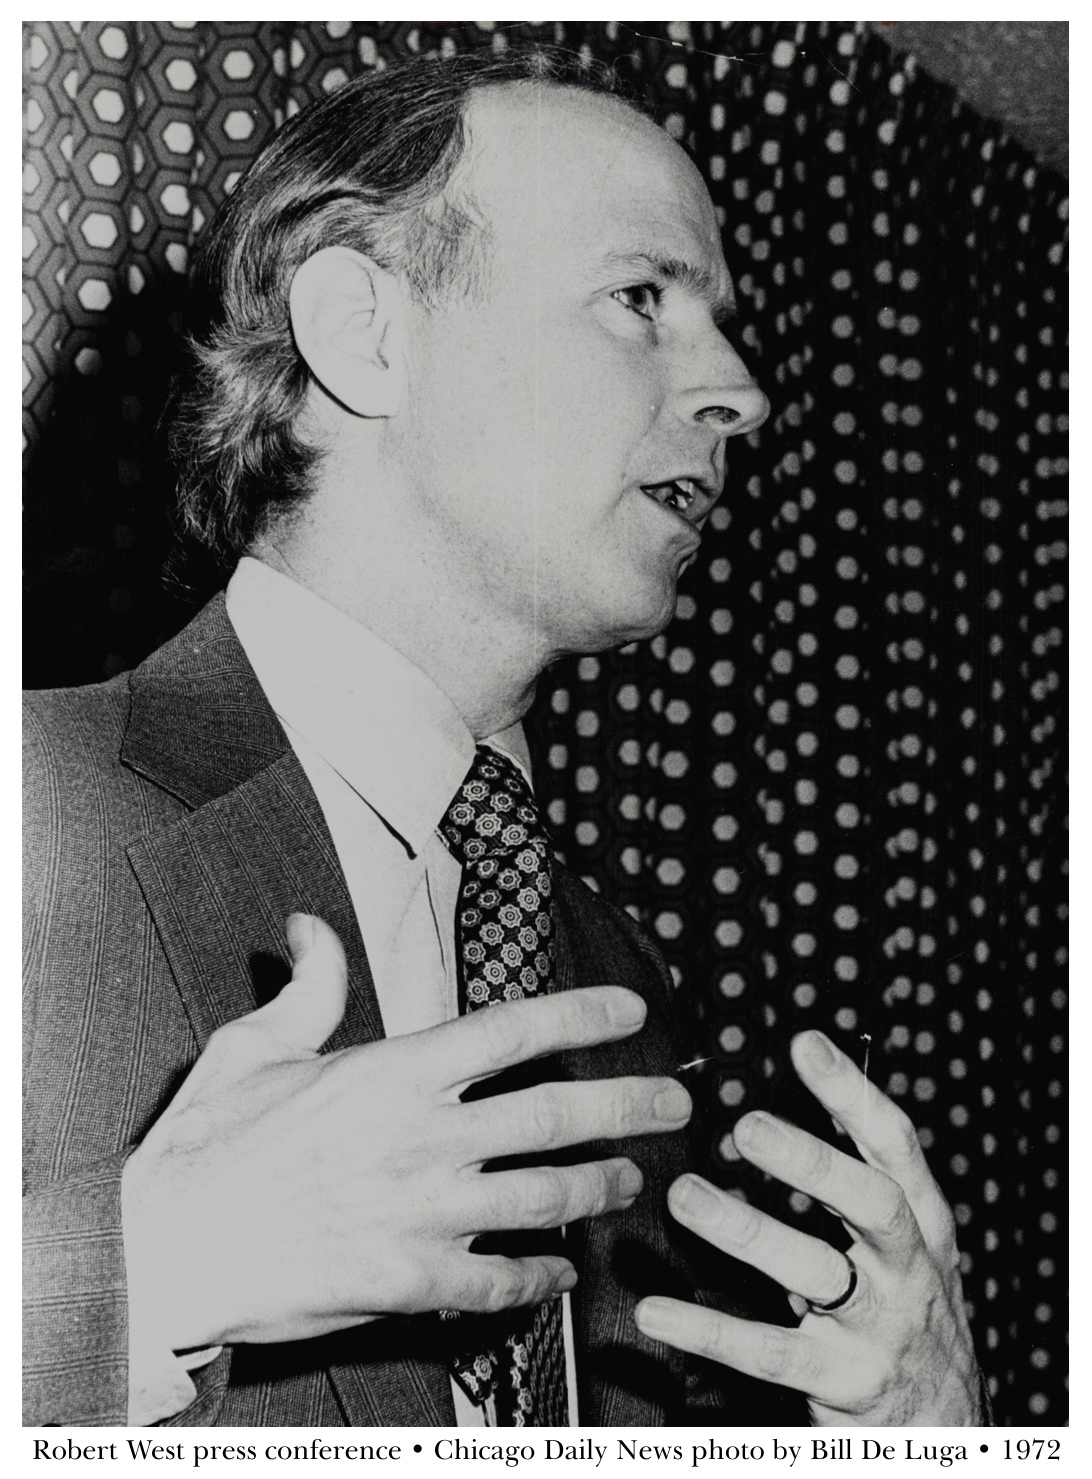 Robert West speaks at 1972 press conference